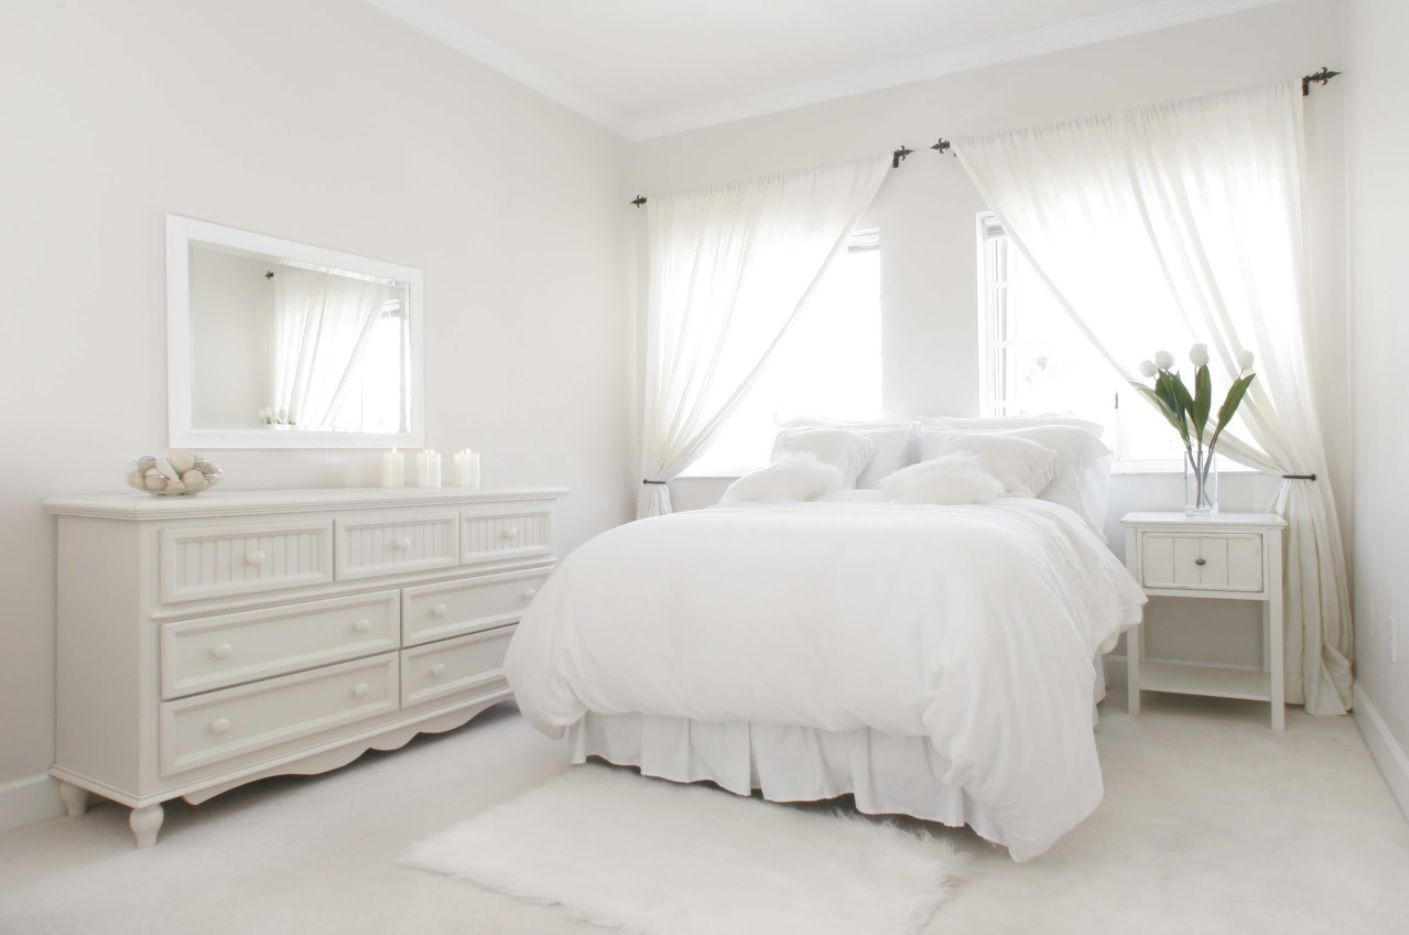 White Bedroom Furniture Set Ideas & Photos. Absolutely snow white room with plenty of natural light